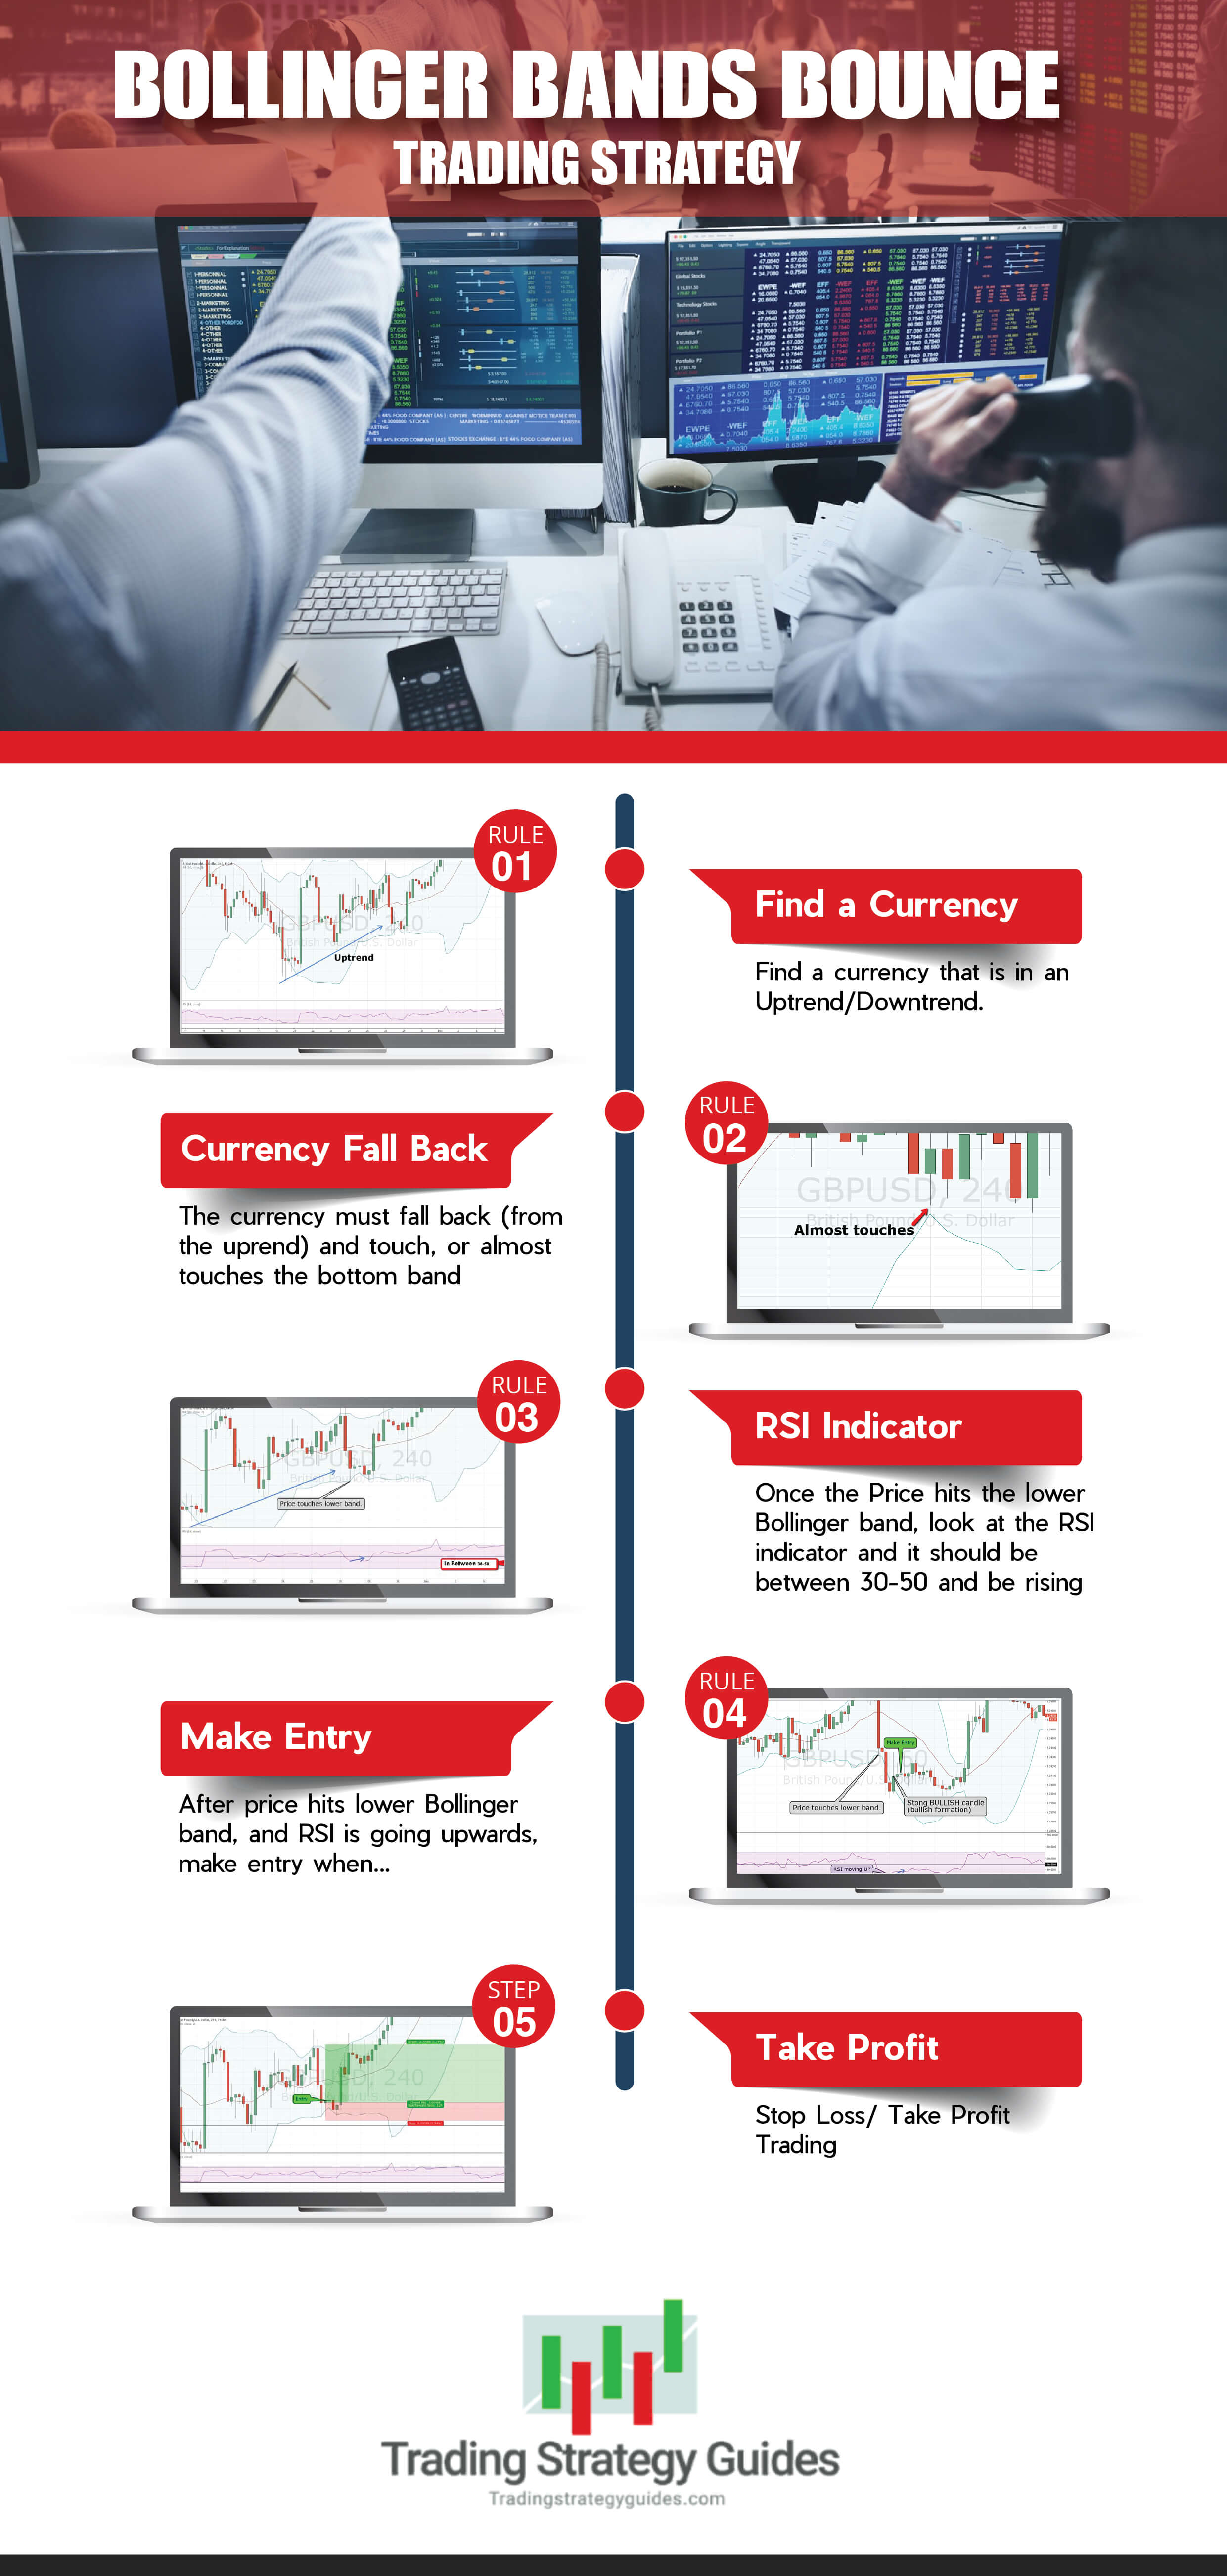 Bollinger bands trading strategy infographic